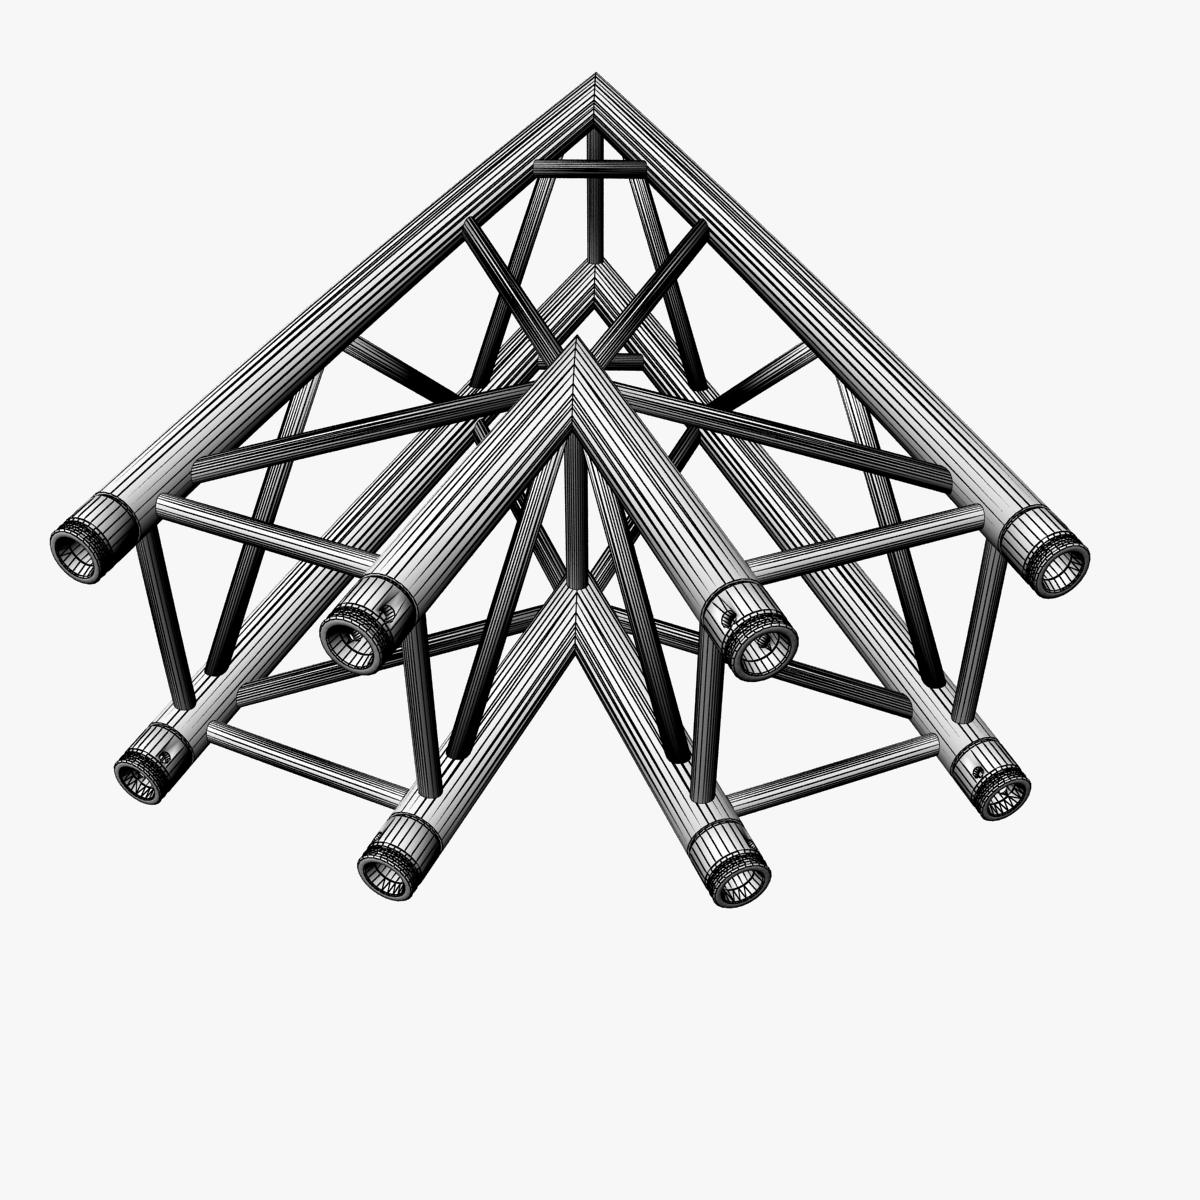 square truss standard (collection 24 modular) 3d model 3ds max dxf fbx c4d dae  texture obj 216355